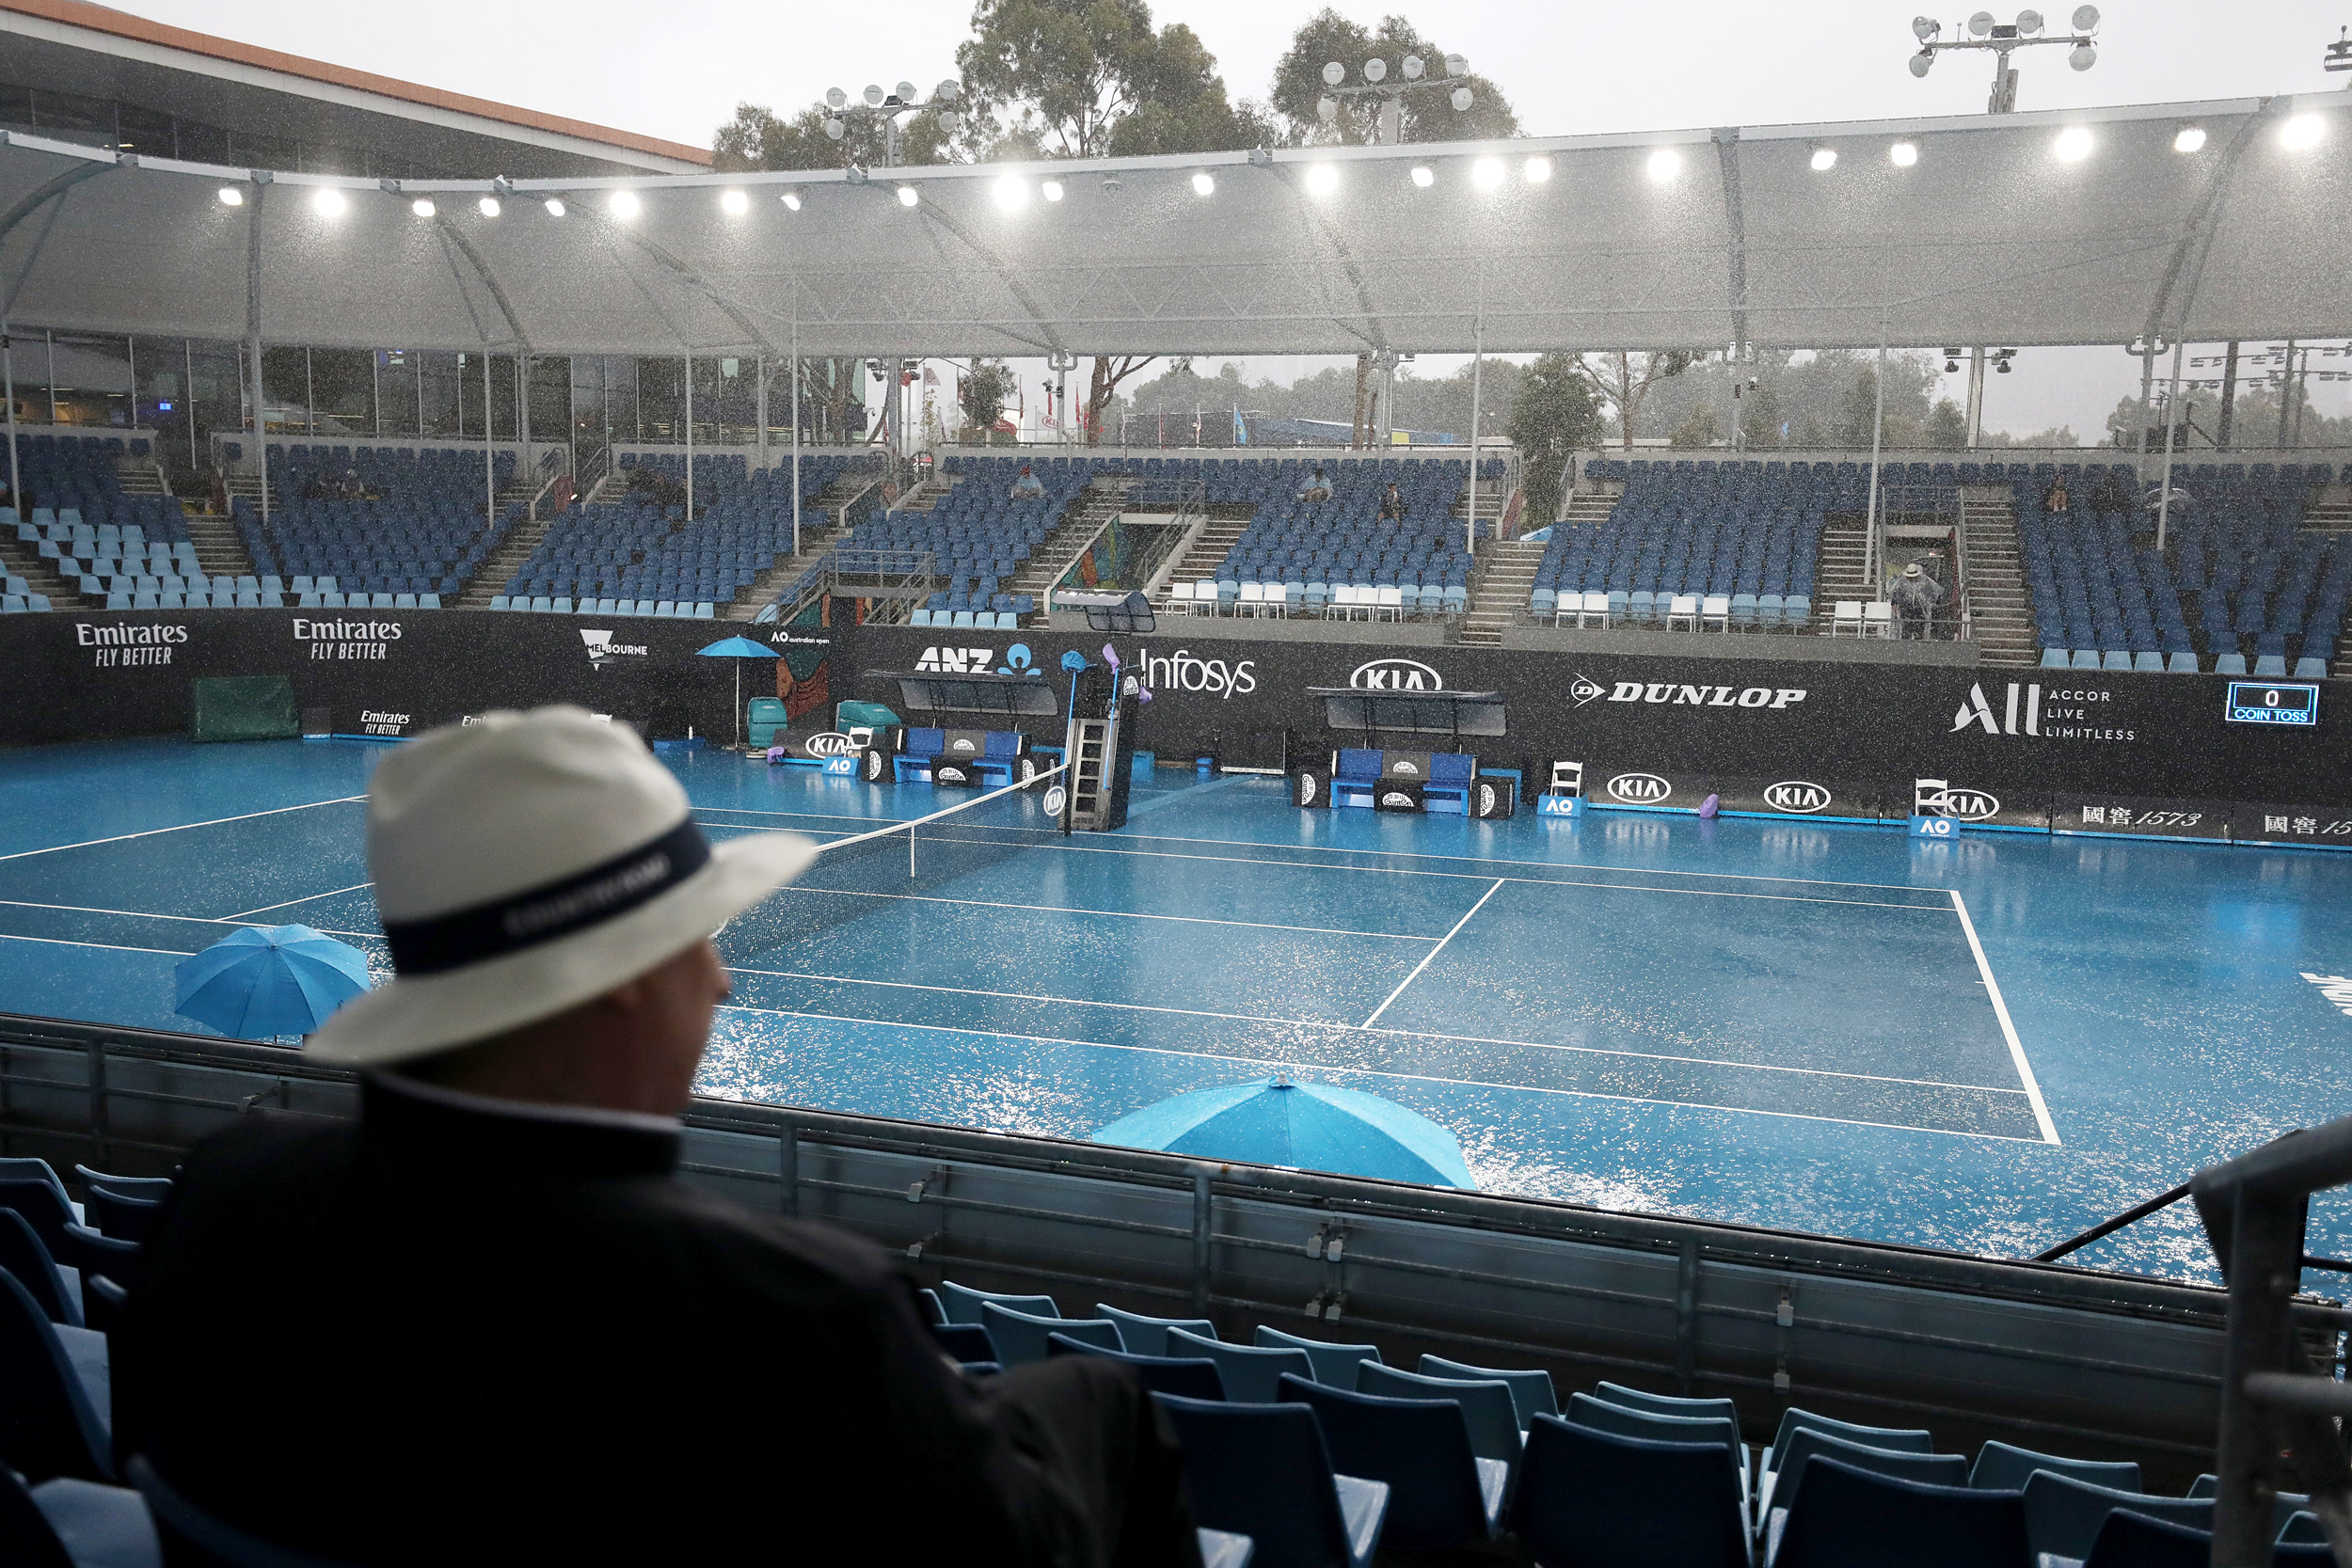 First Smoke Now Rain As Australian Open Struggles With Weather